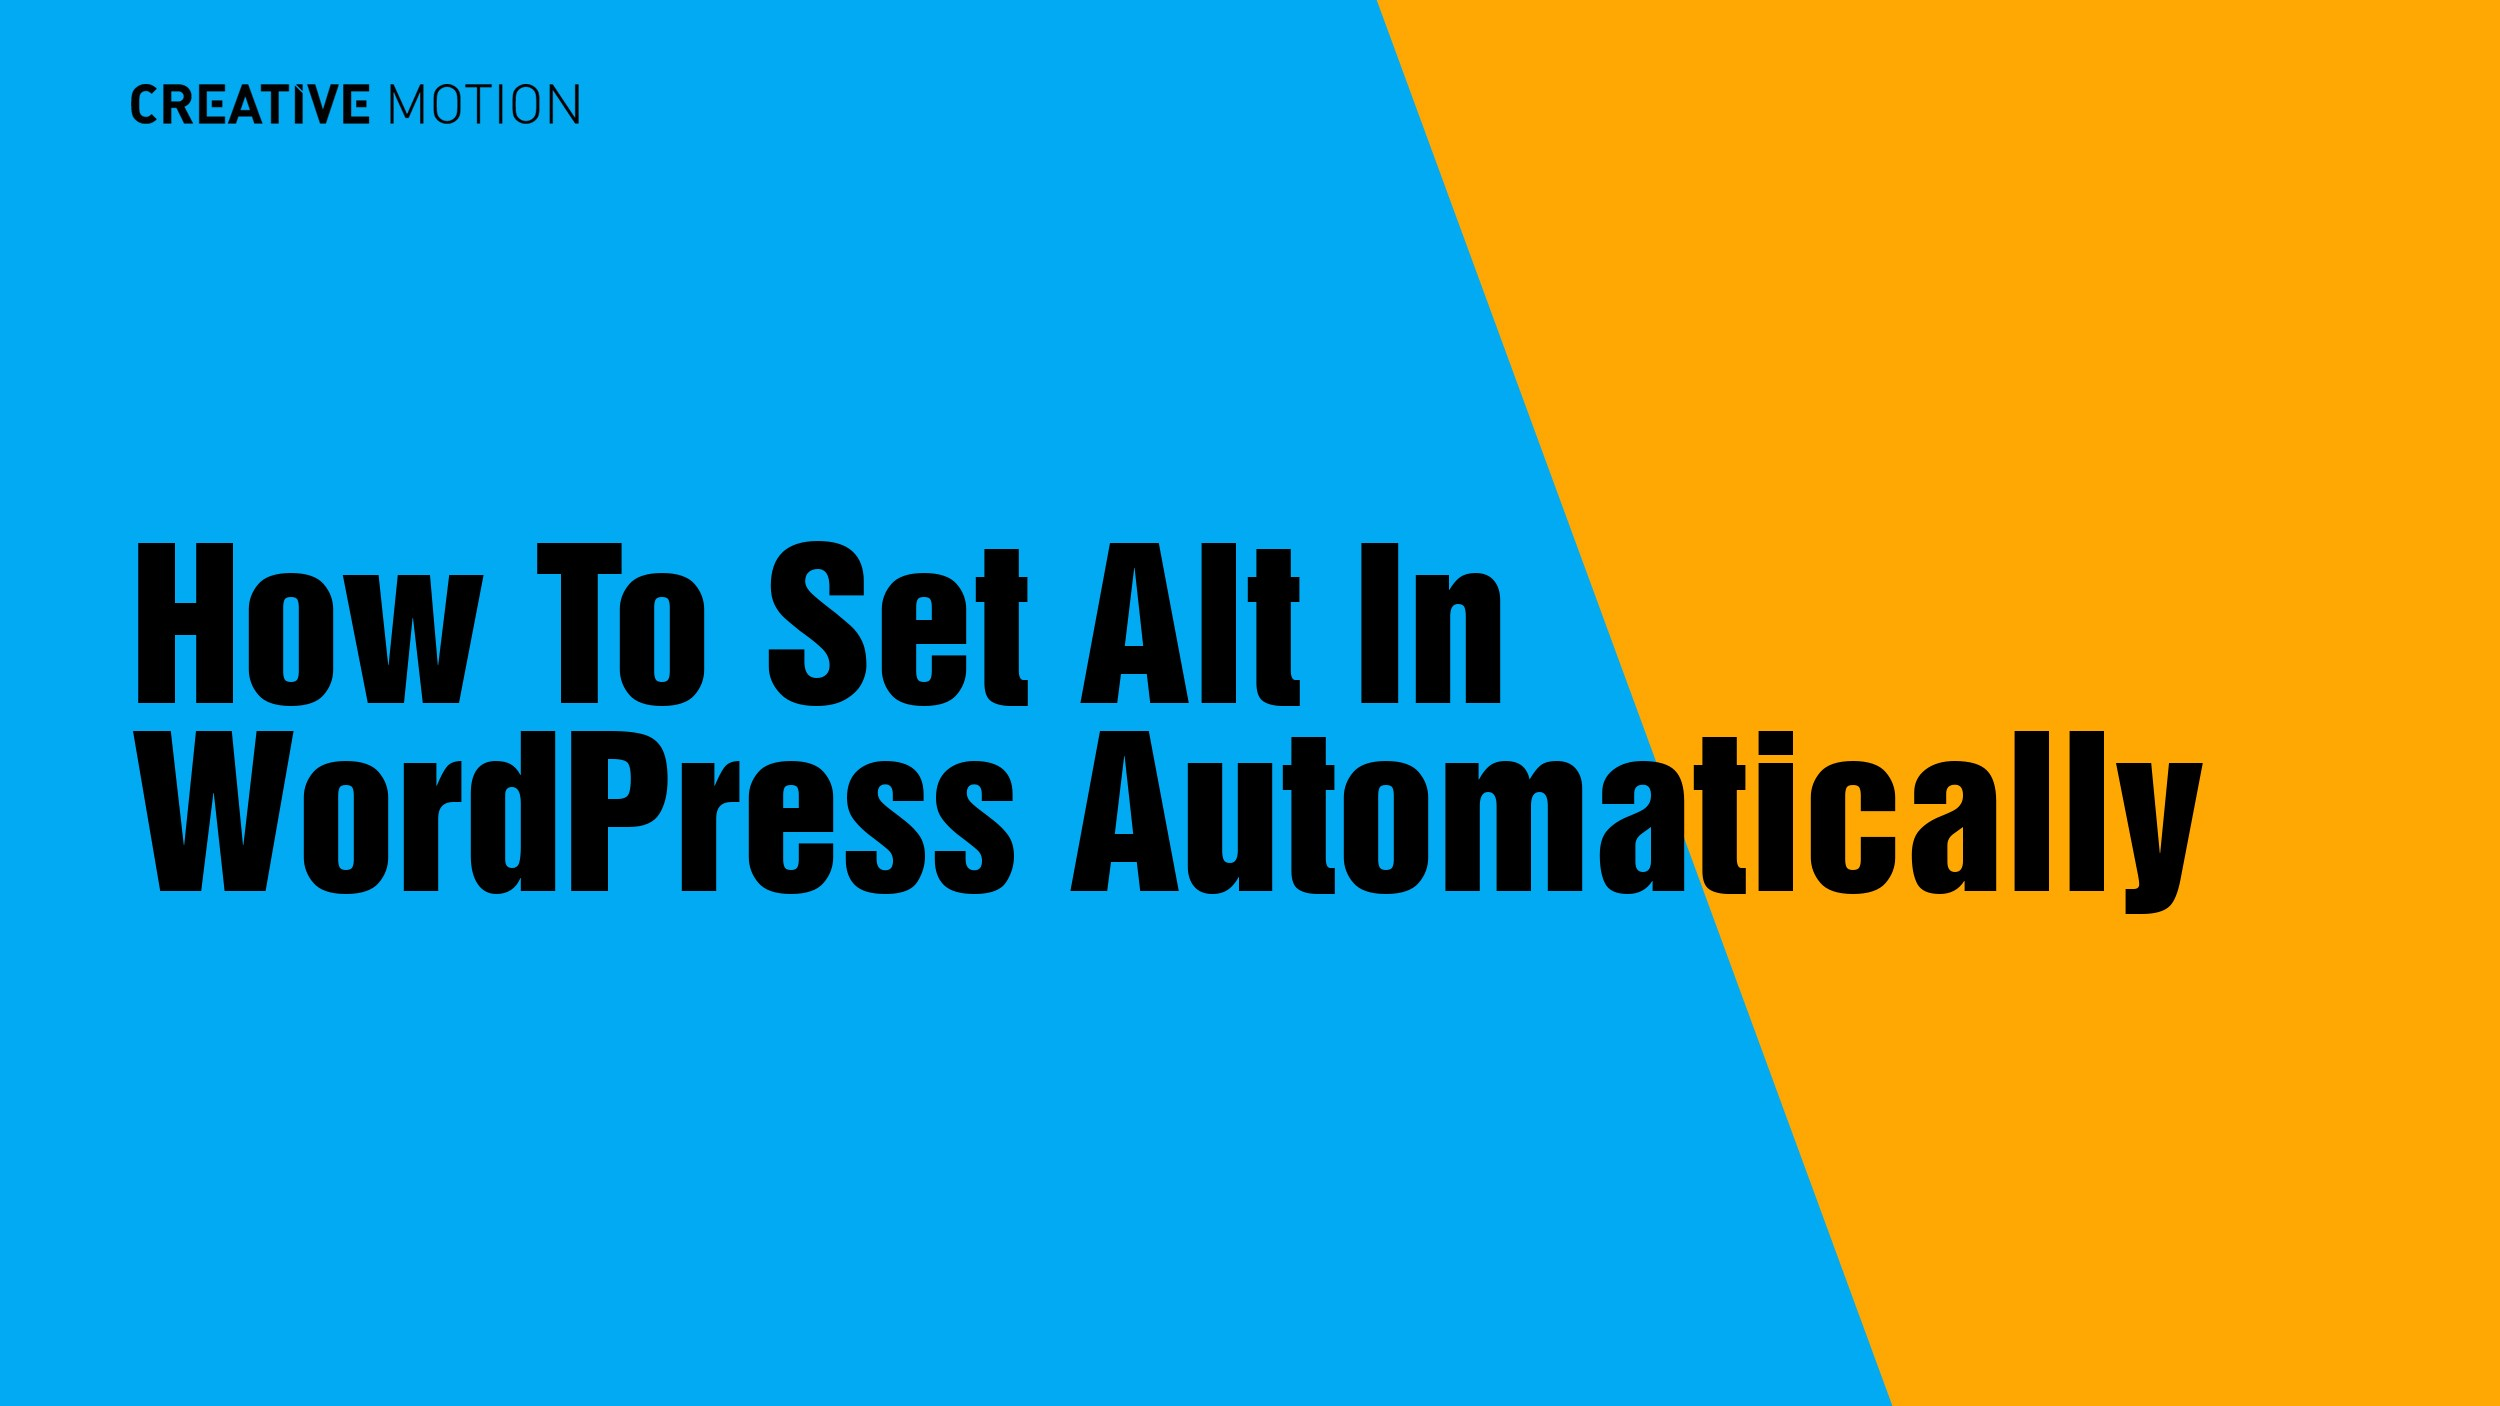 How To Set Alt In WordPress Automatically